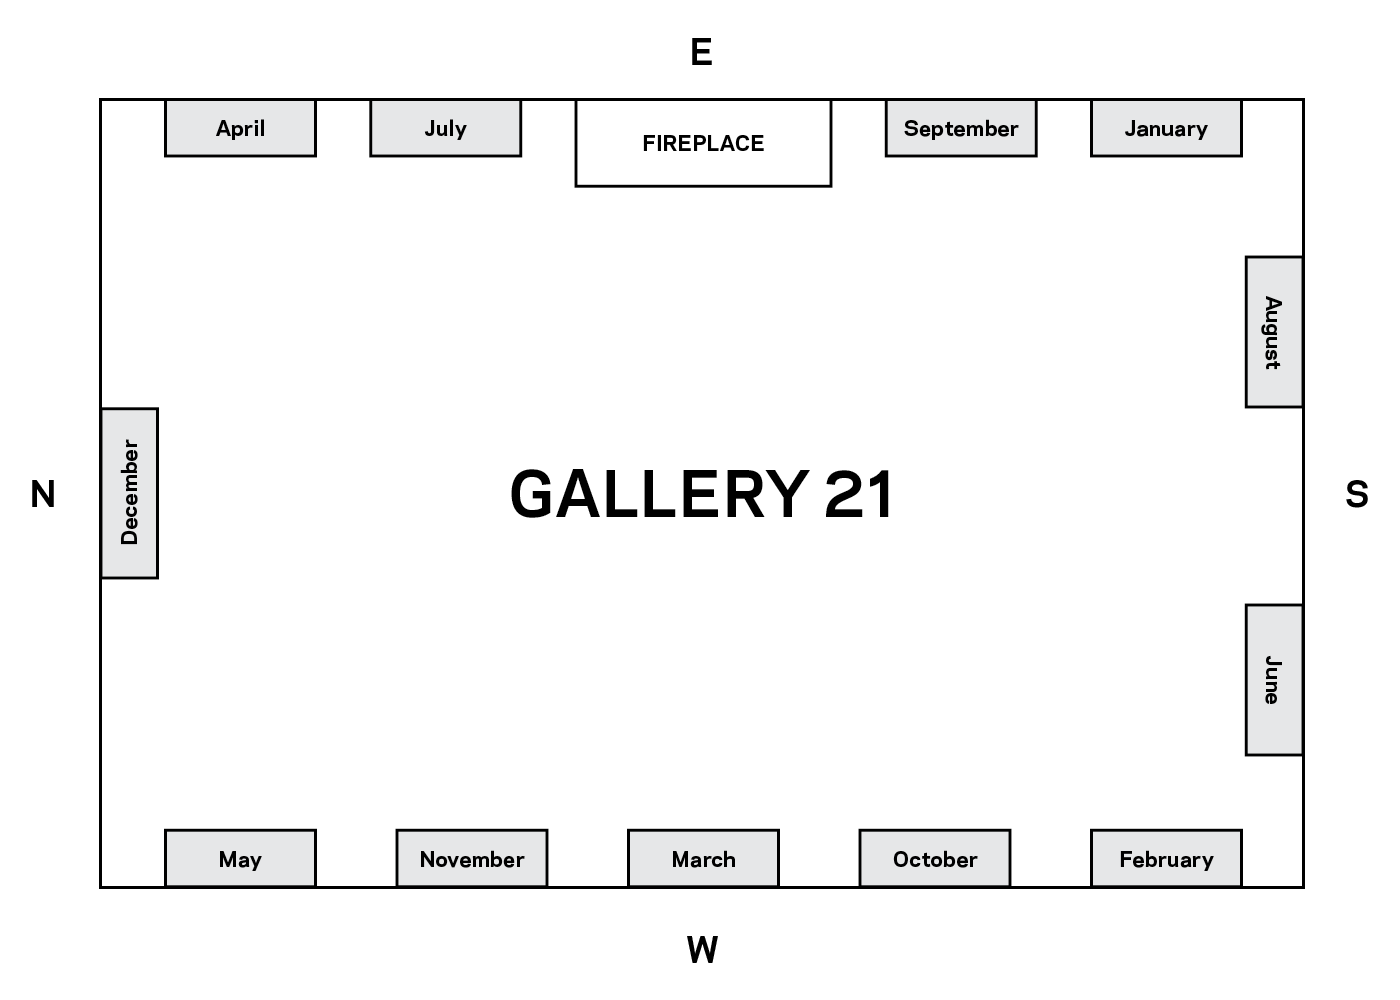 Layout of Gallery 21 at The John and Mable Ringling Museum of Art